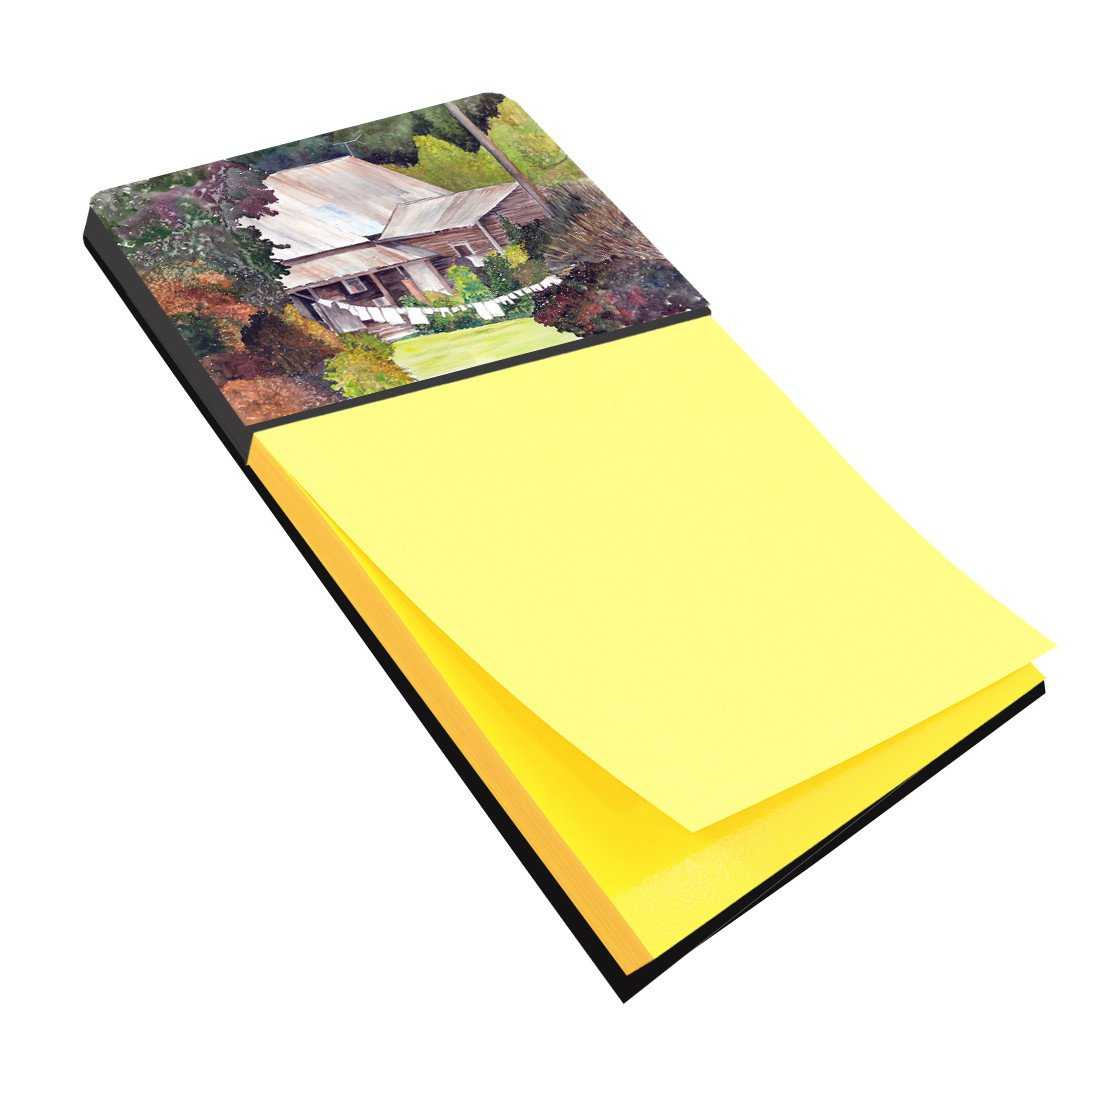 Wash Day Refiillable Sticky Note Holder or Postit Note Dispenser 8741SN by Caroline's Treasures